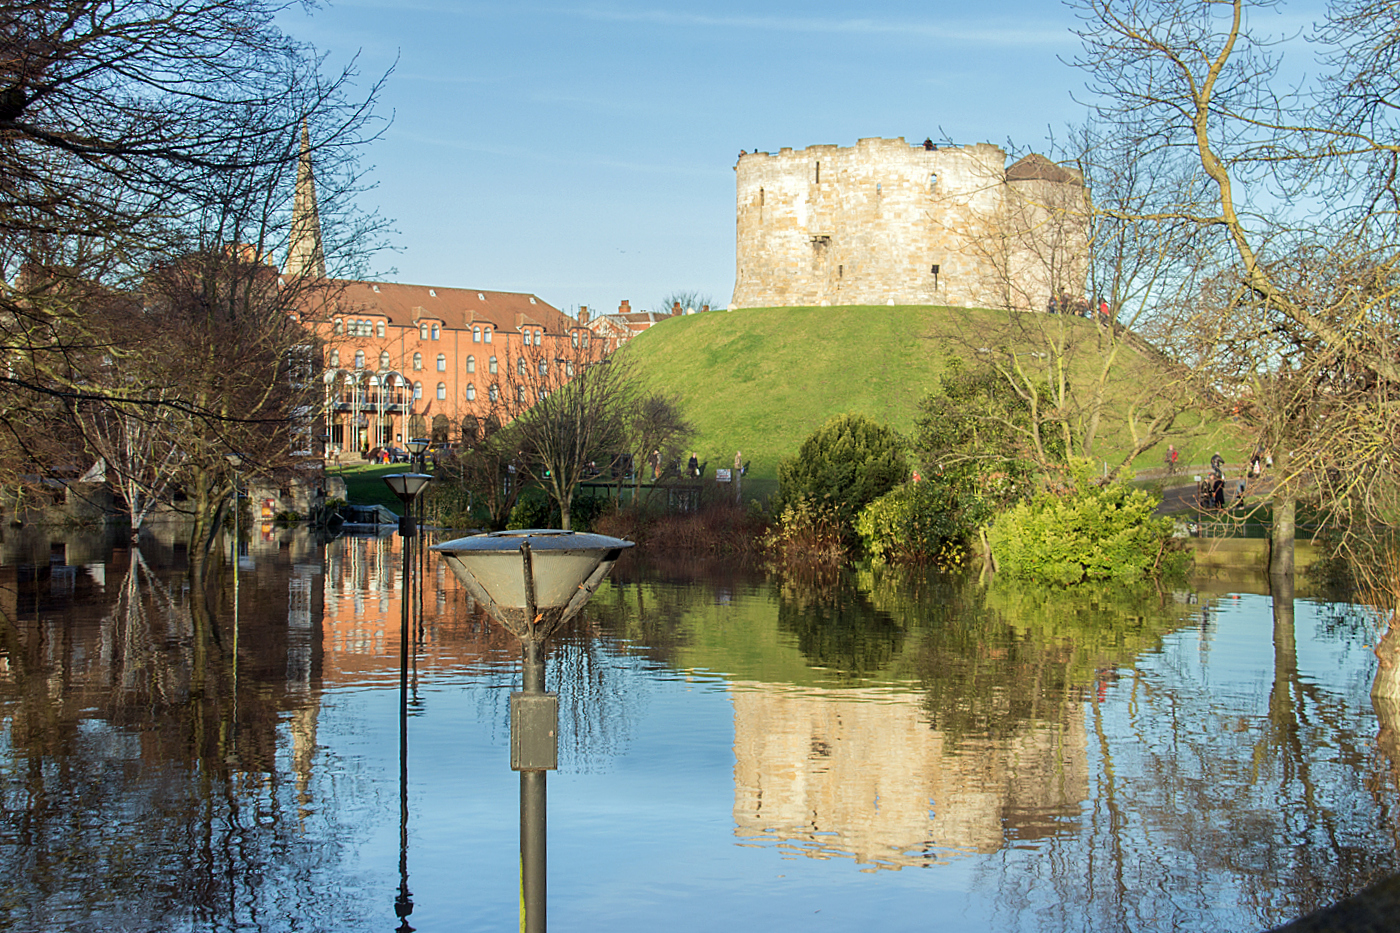 4_cliffords tower in flood_alison taylor.jpg